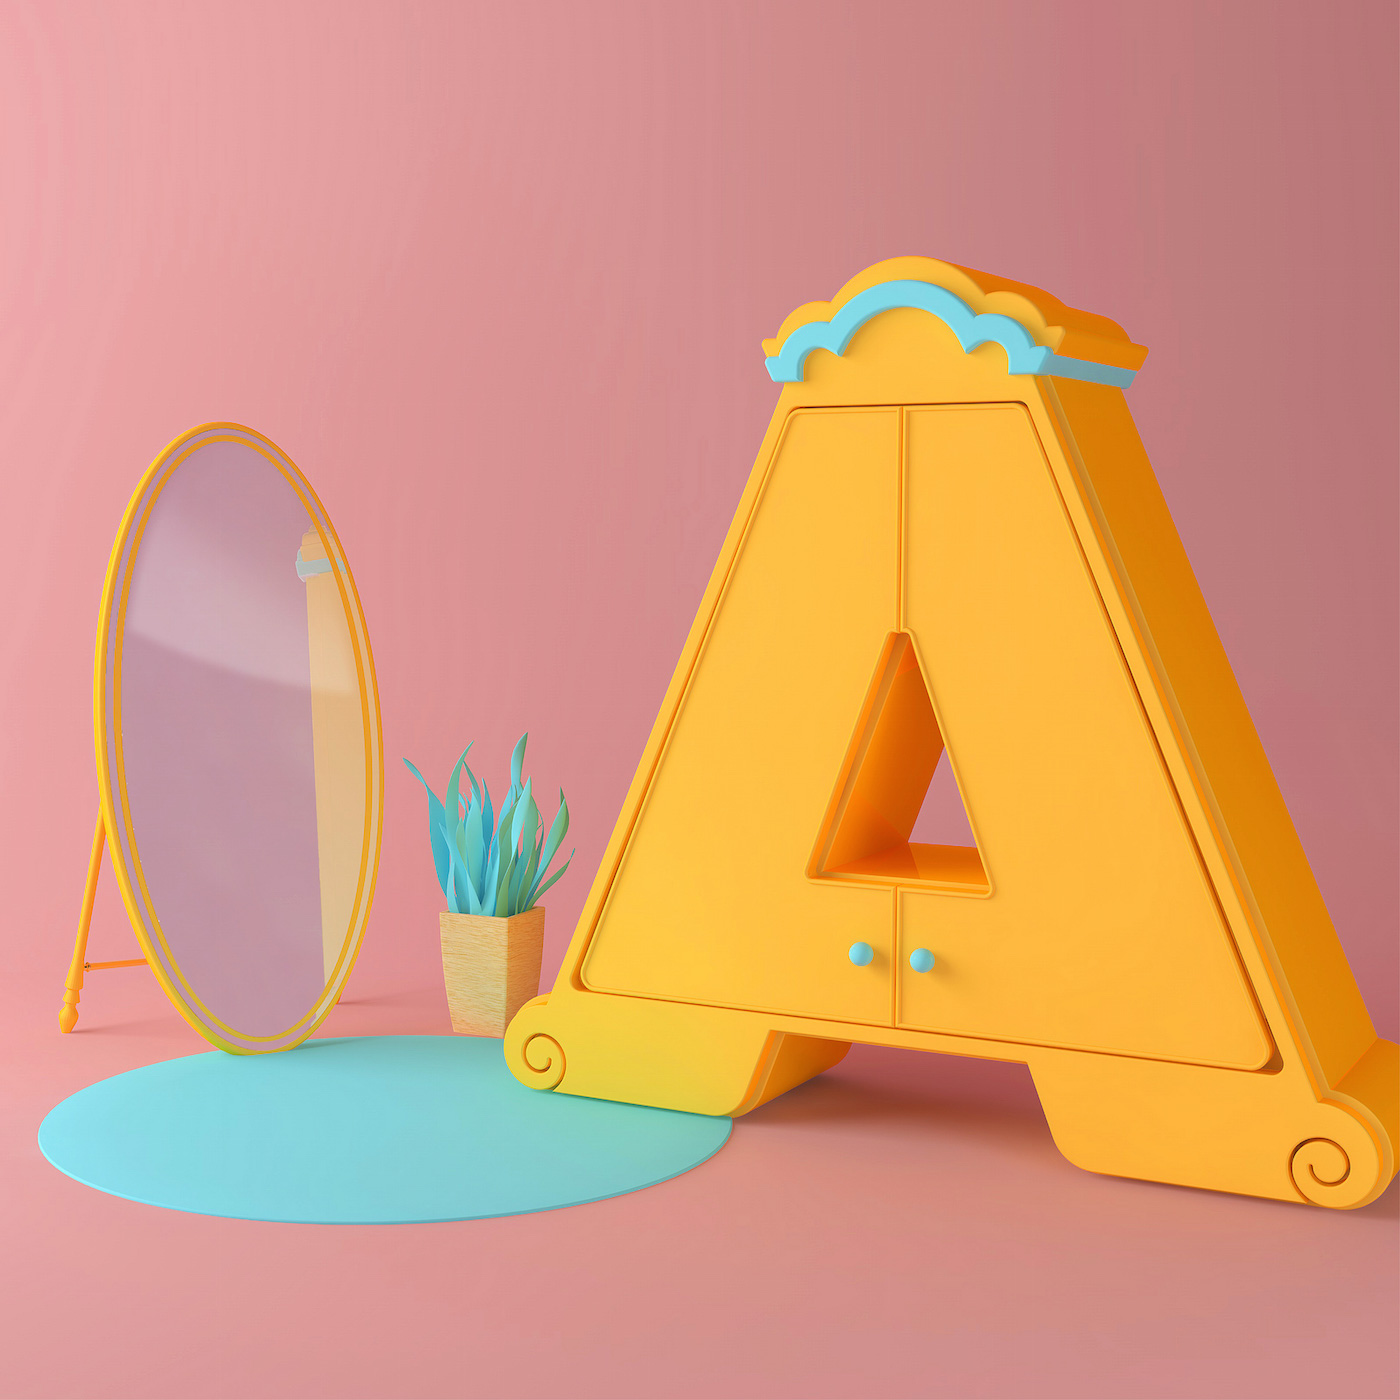 Cute Typography by Tatiana Astua (7 pics)